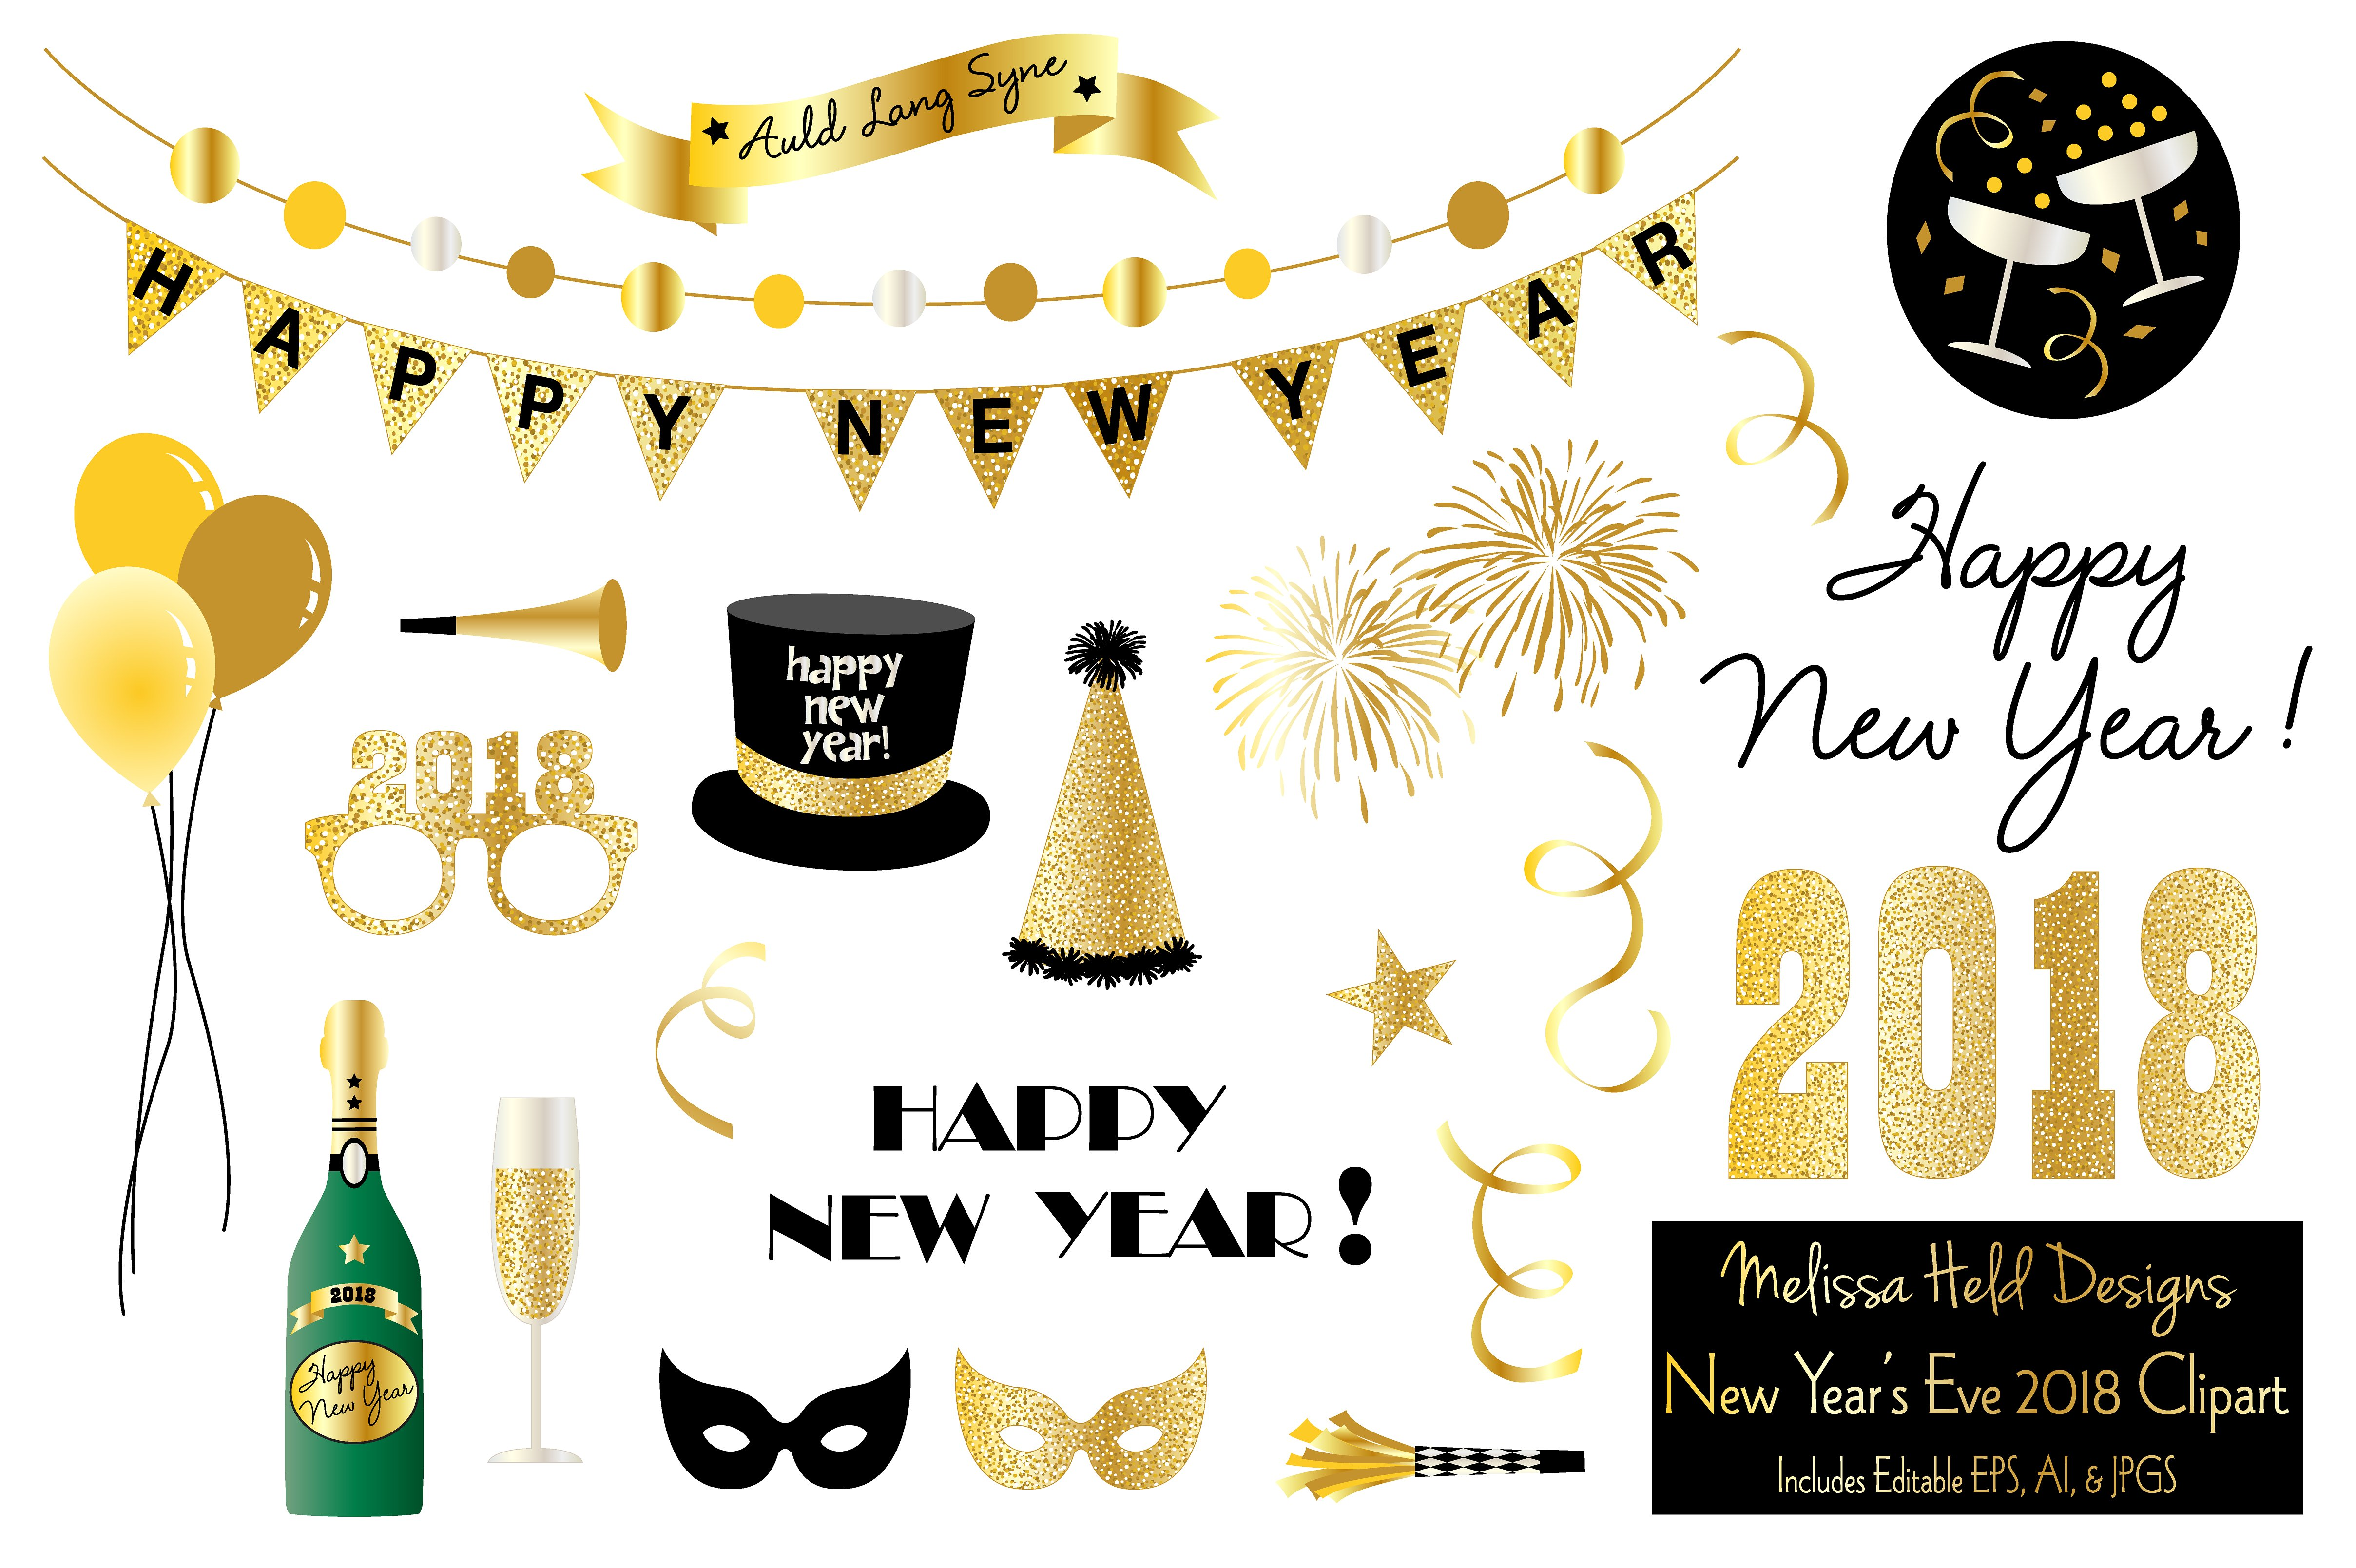 Year eve clipart png. New years backgrounds restore